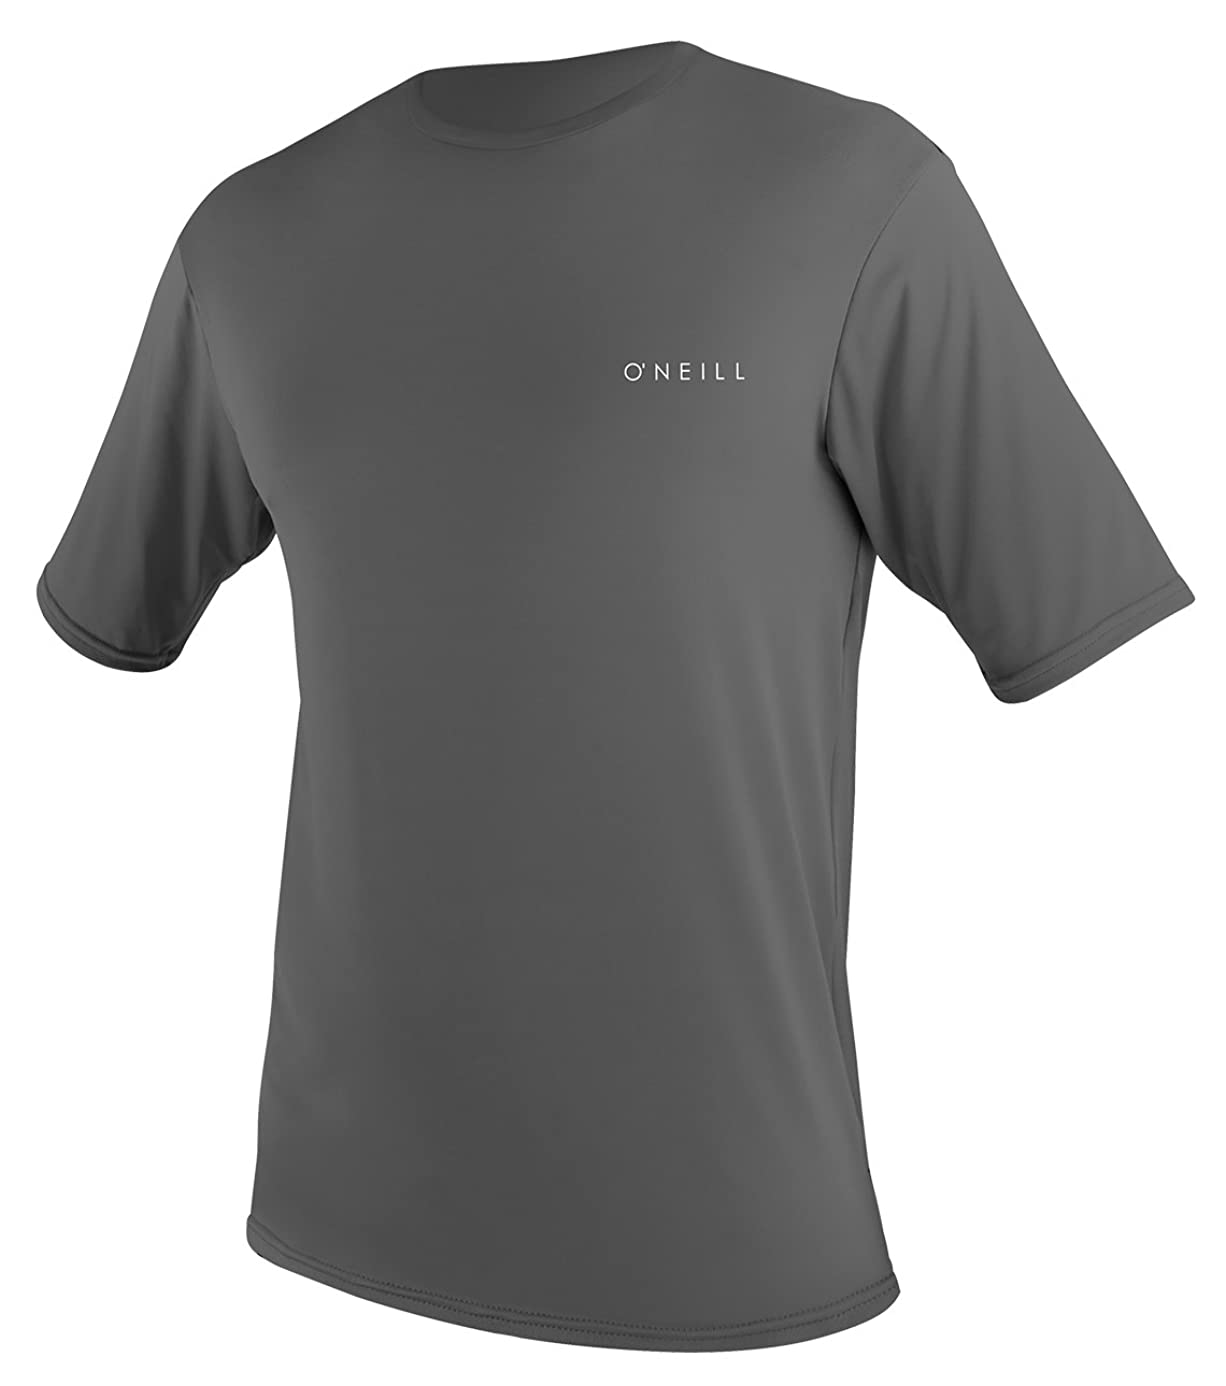 O'Neill Men's Basic Skins Upf 30 + Short Sleeve Sun Shirt